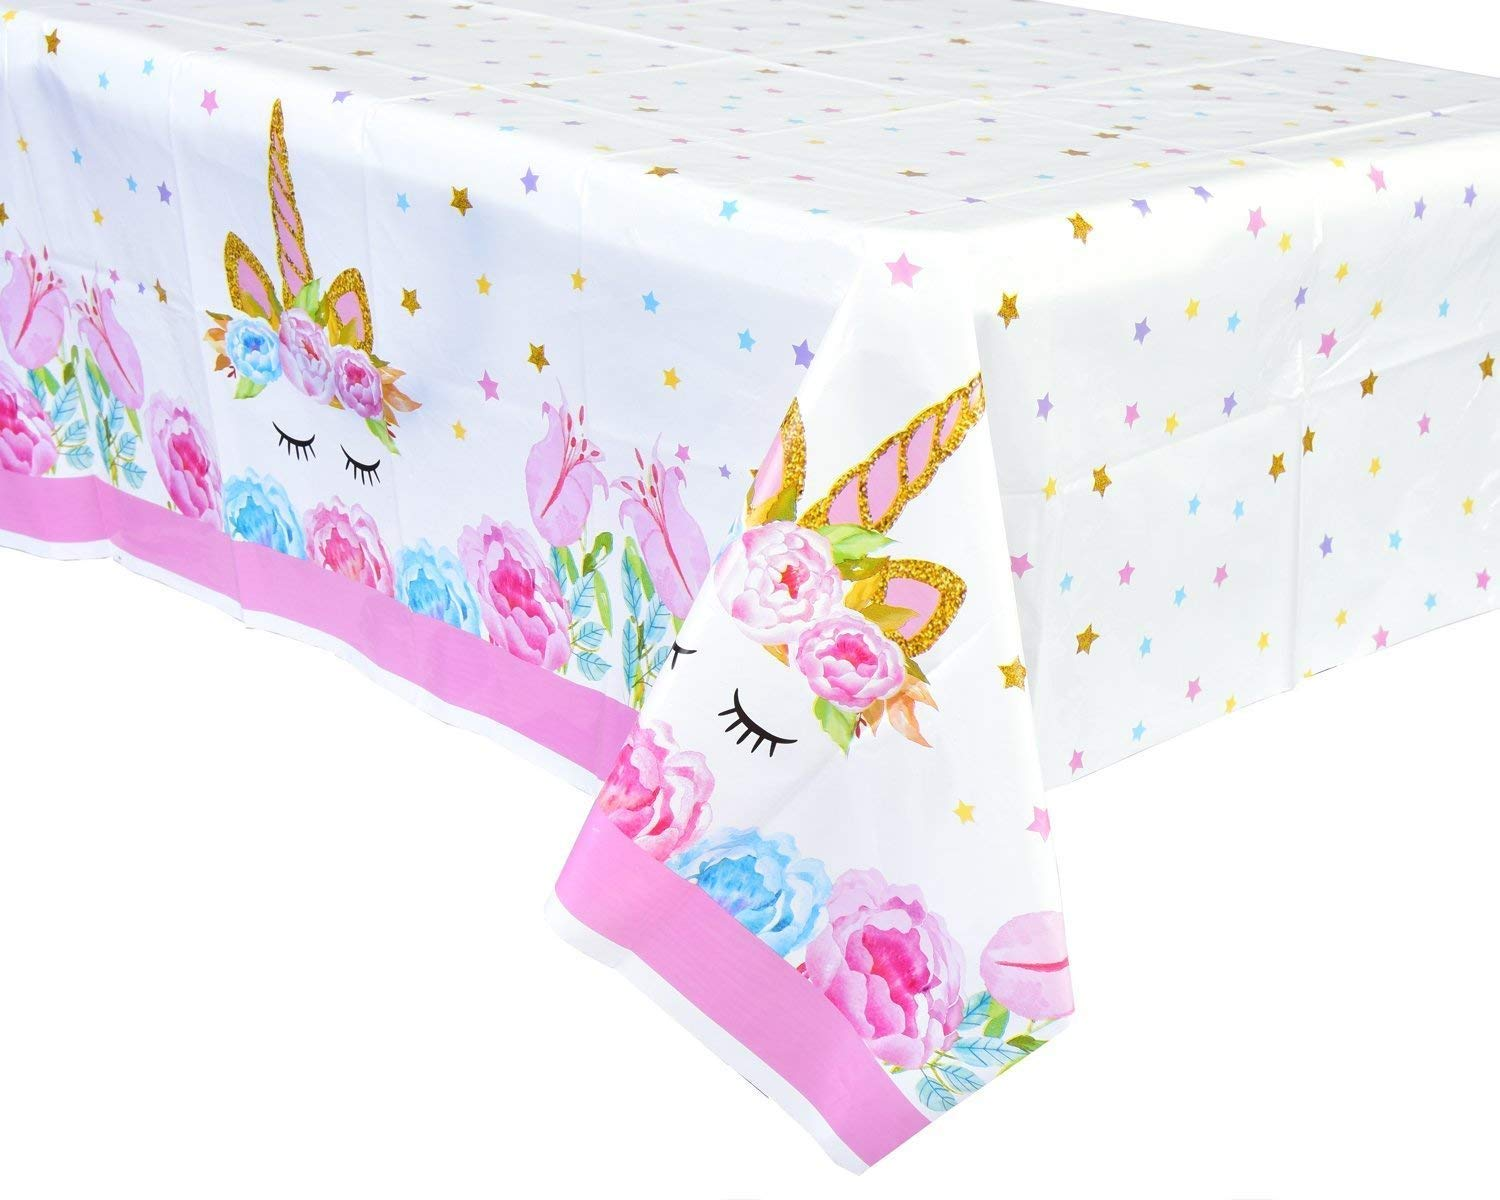 FZR Legend [Upgraded] Unicorn Birthday Party Supplies - 2 Pack Unicorn Plastic Tablecloth | 52 x 90 inches,Disposable Table Cover | Magical Unicorn Themed Party Decorations for Girls and Baby Shower